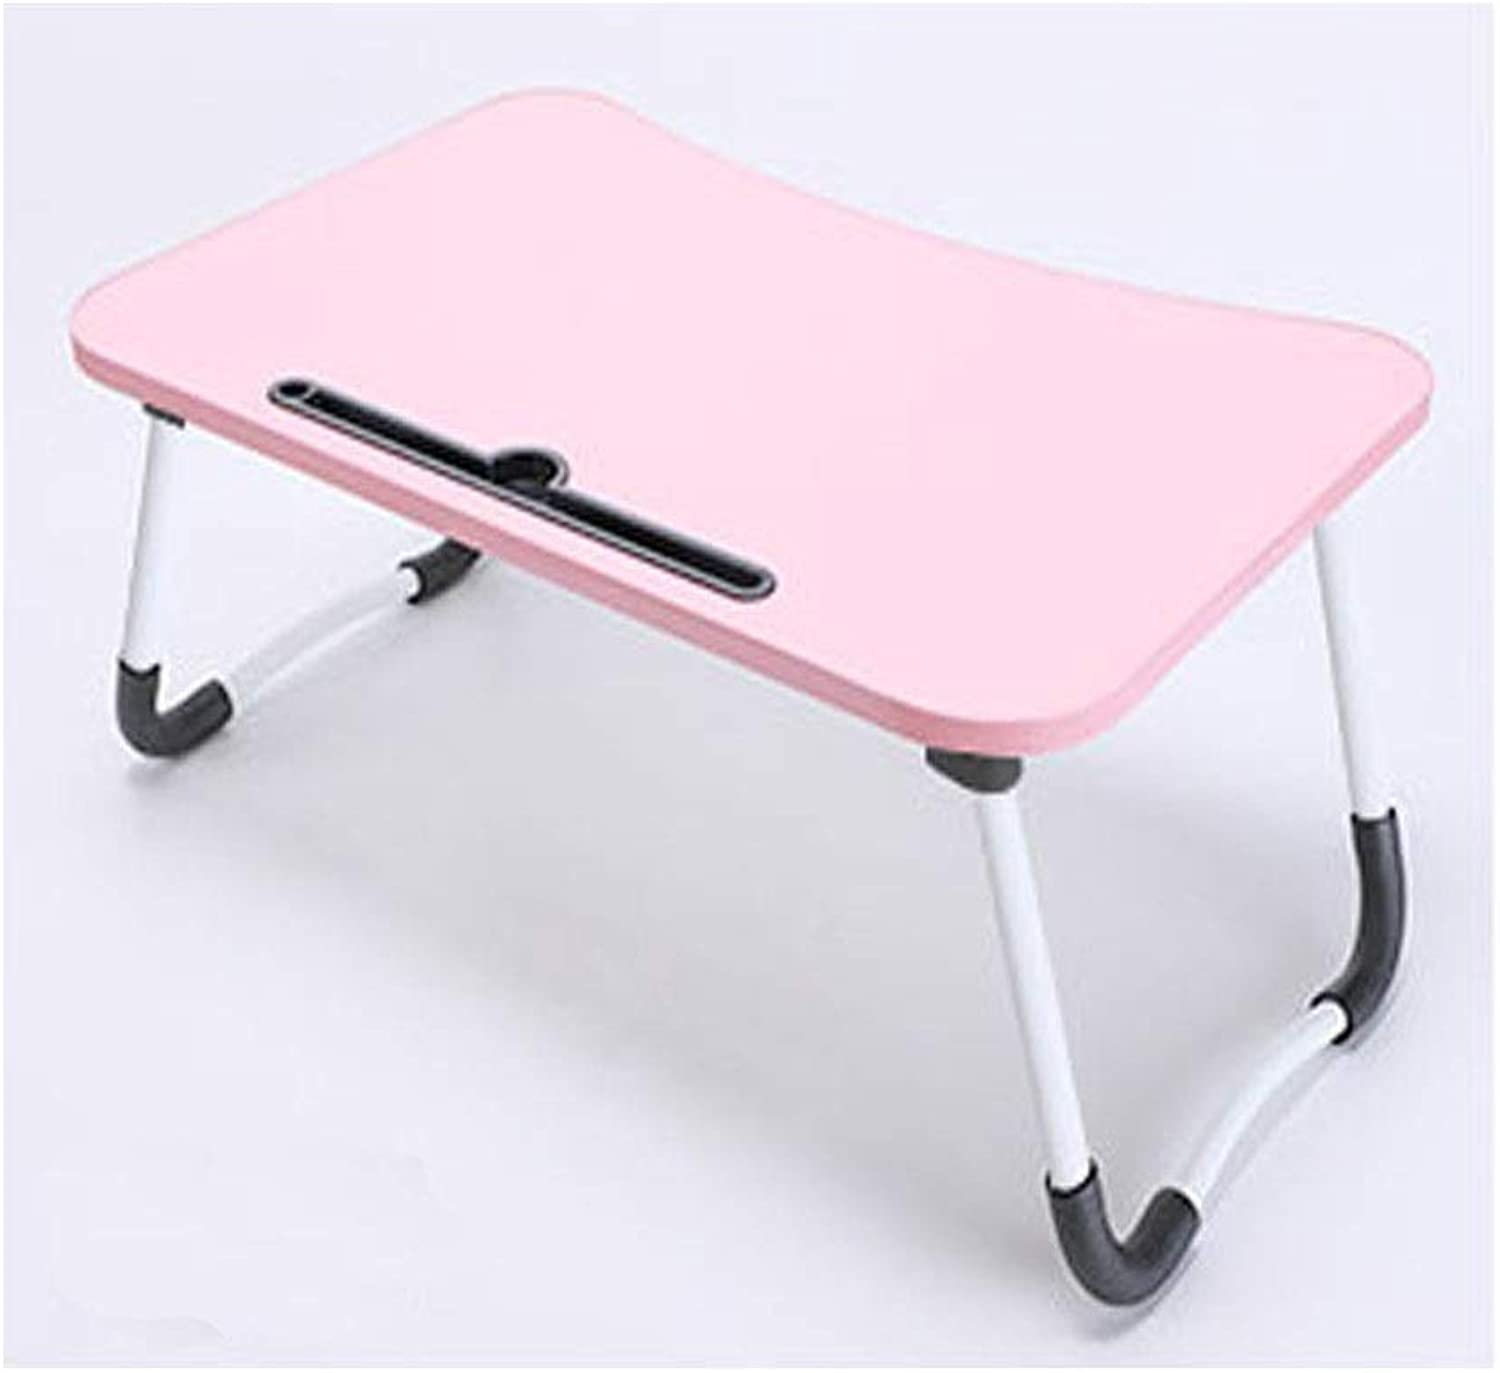 Tables and Chairs, Folding Tables and Chairs, Foldable Simple Small Table, Simple and Stylish, Create Your Own Folding Table (color   Pink)